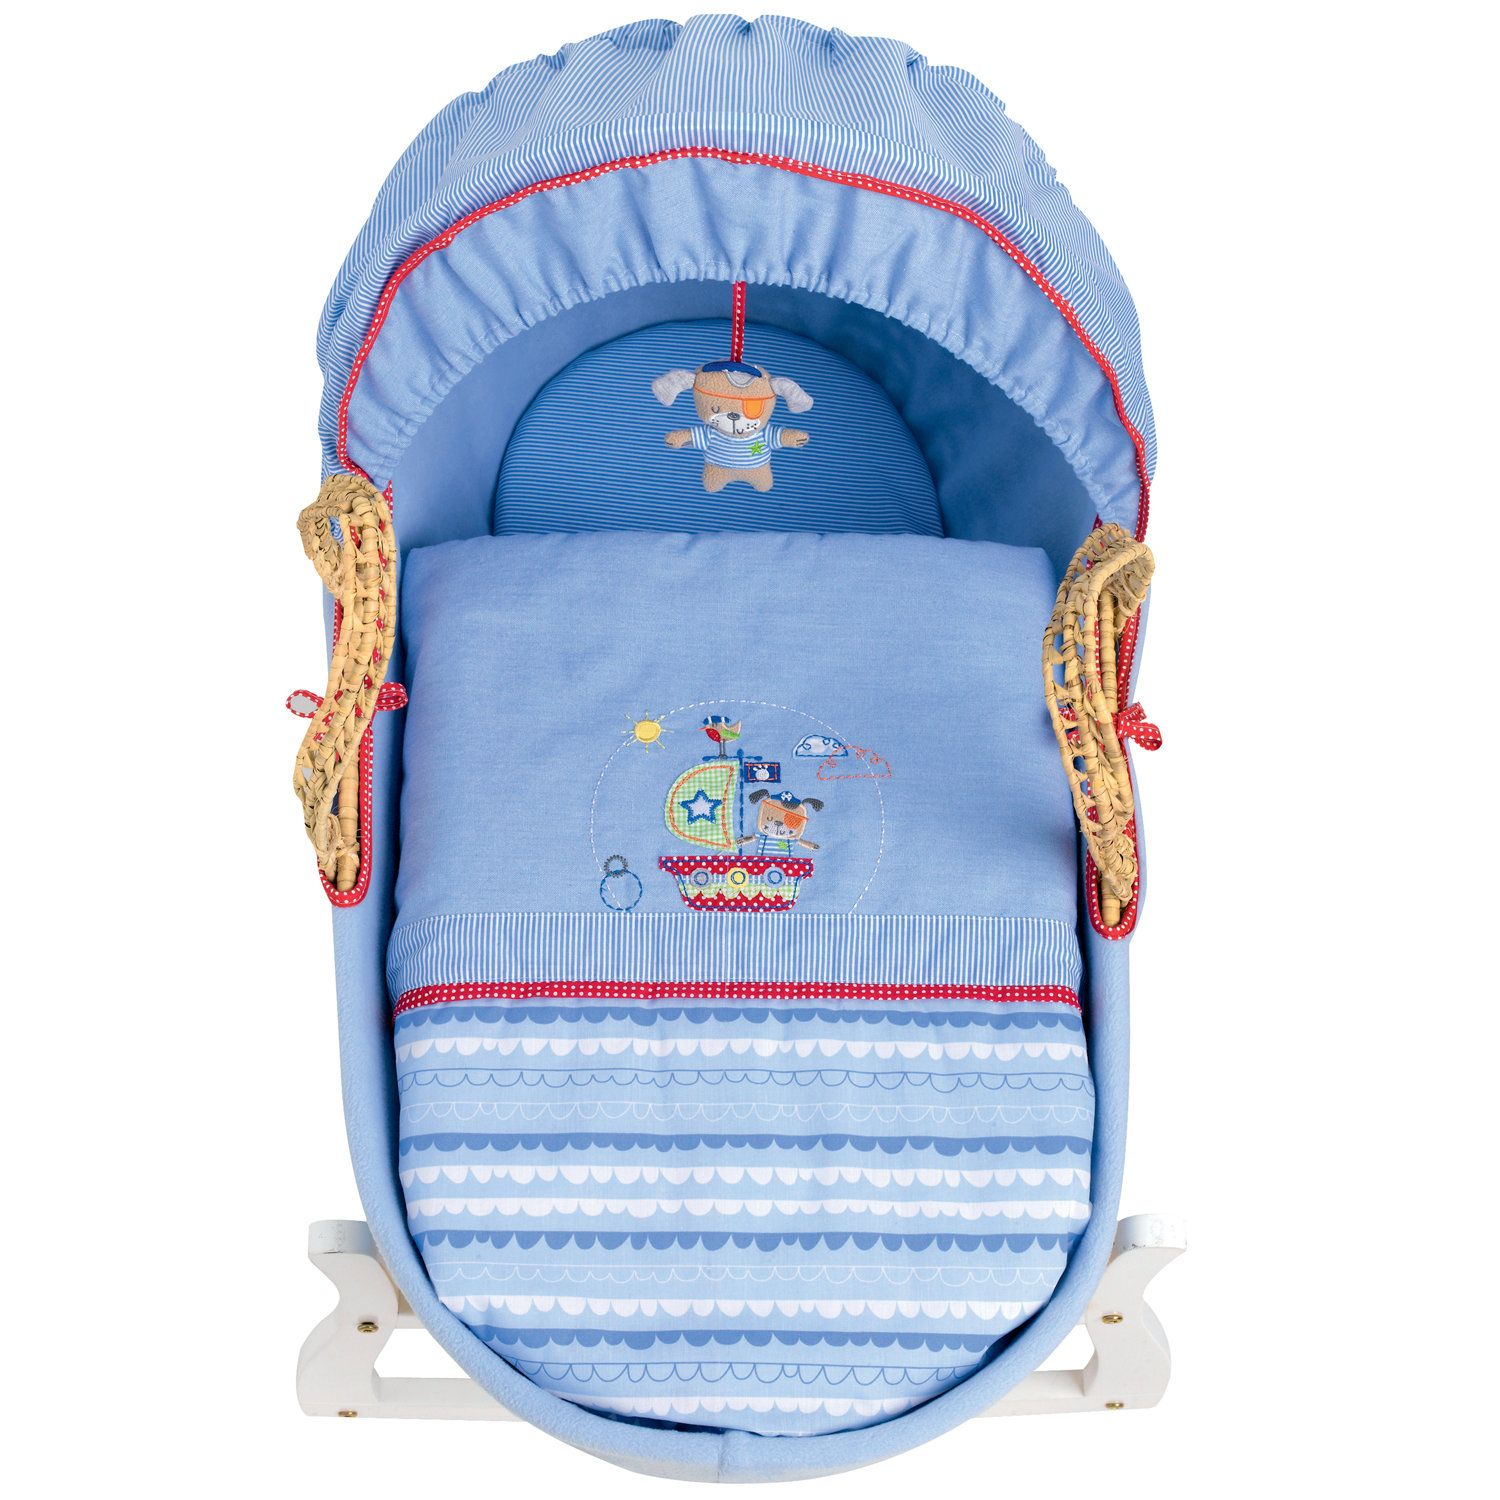 Little Treasure Moses Basket 45 Pounds Baby Bed Babies R Us Baby Car Seats